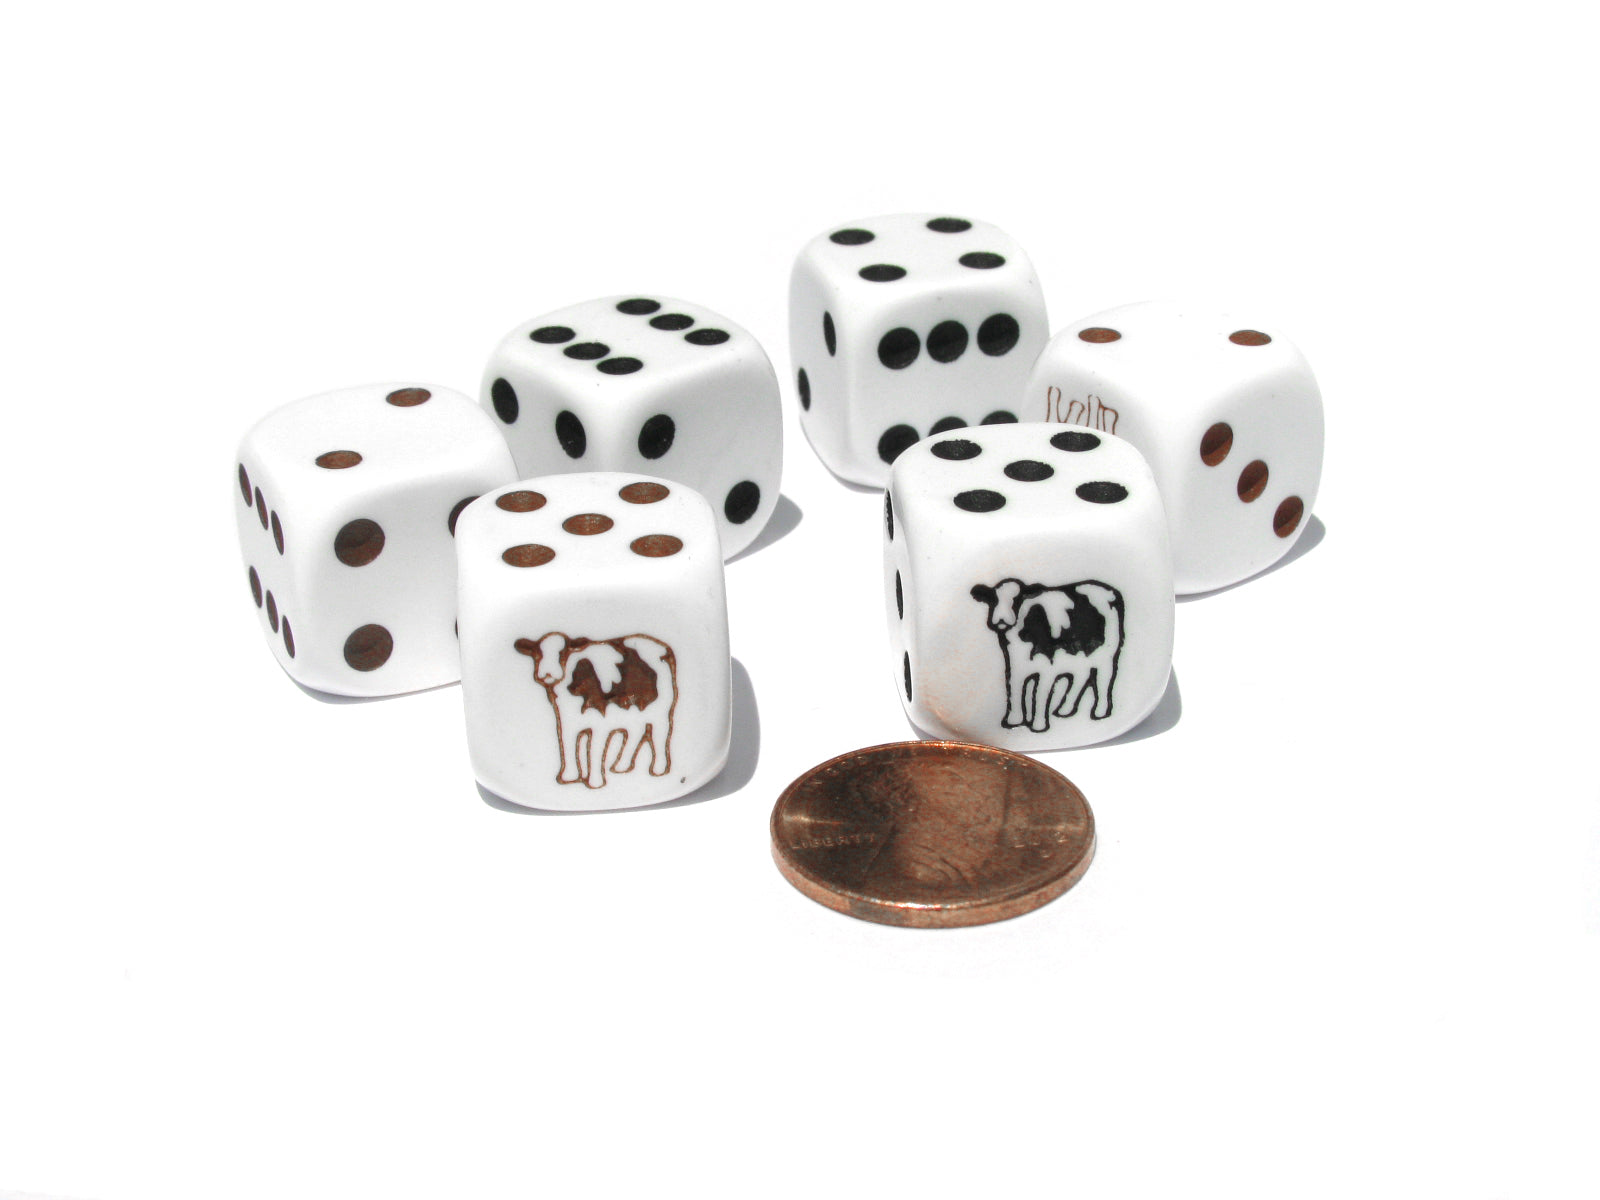 Set of 6 Cow Dice 16mm D6 Rounded Edge- 3 White w Brown and 3 White w Black